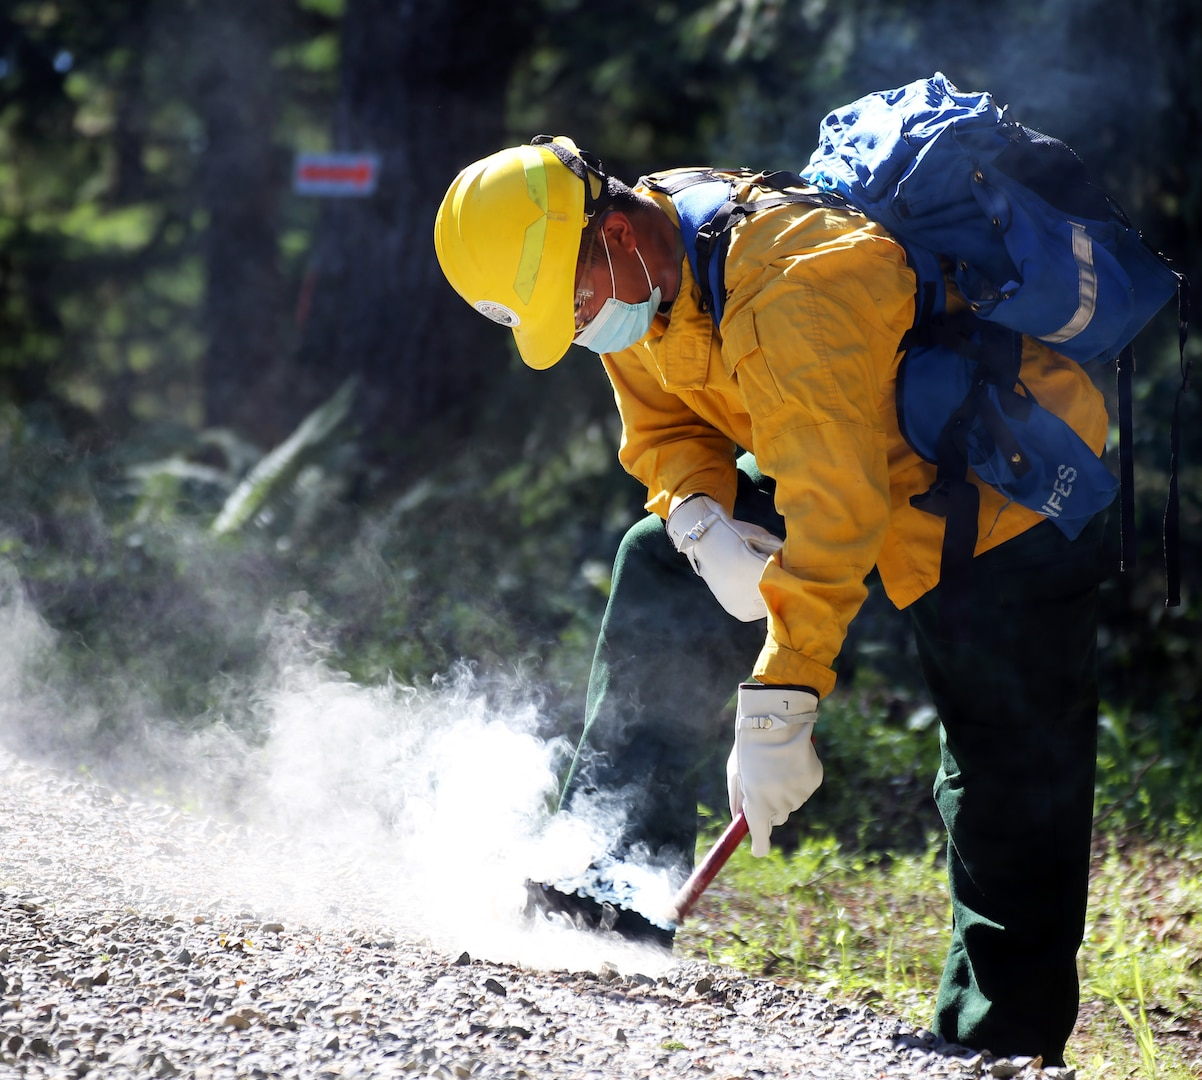 Washington National Guard Pfc. Xavier Cha, 1st Battalion, 161st Infantry Regiment, practices with a flare during wildfire training with the Washington Department of Natural Resources June 24, 2021, in Rainier, Wash. About 250 Washington National Guard members received firefighter training this spring in preparation for wildfire season.